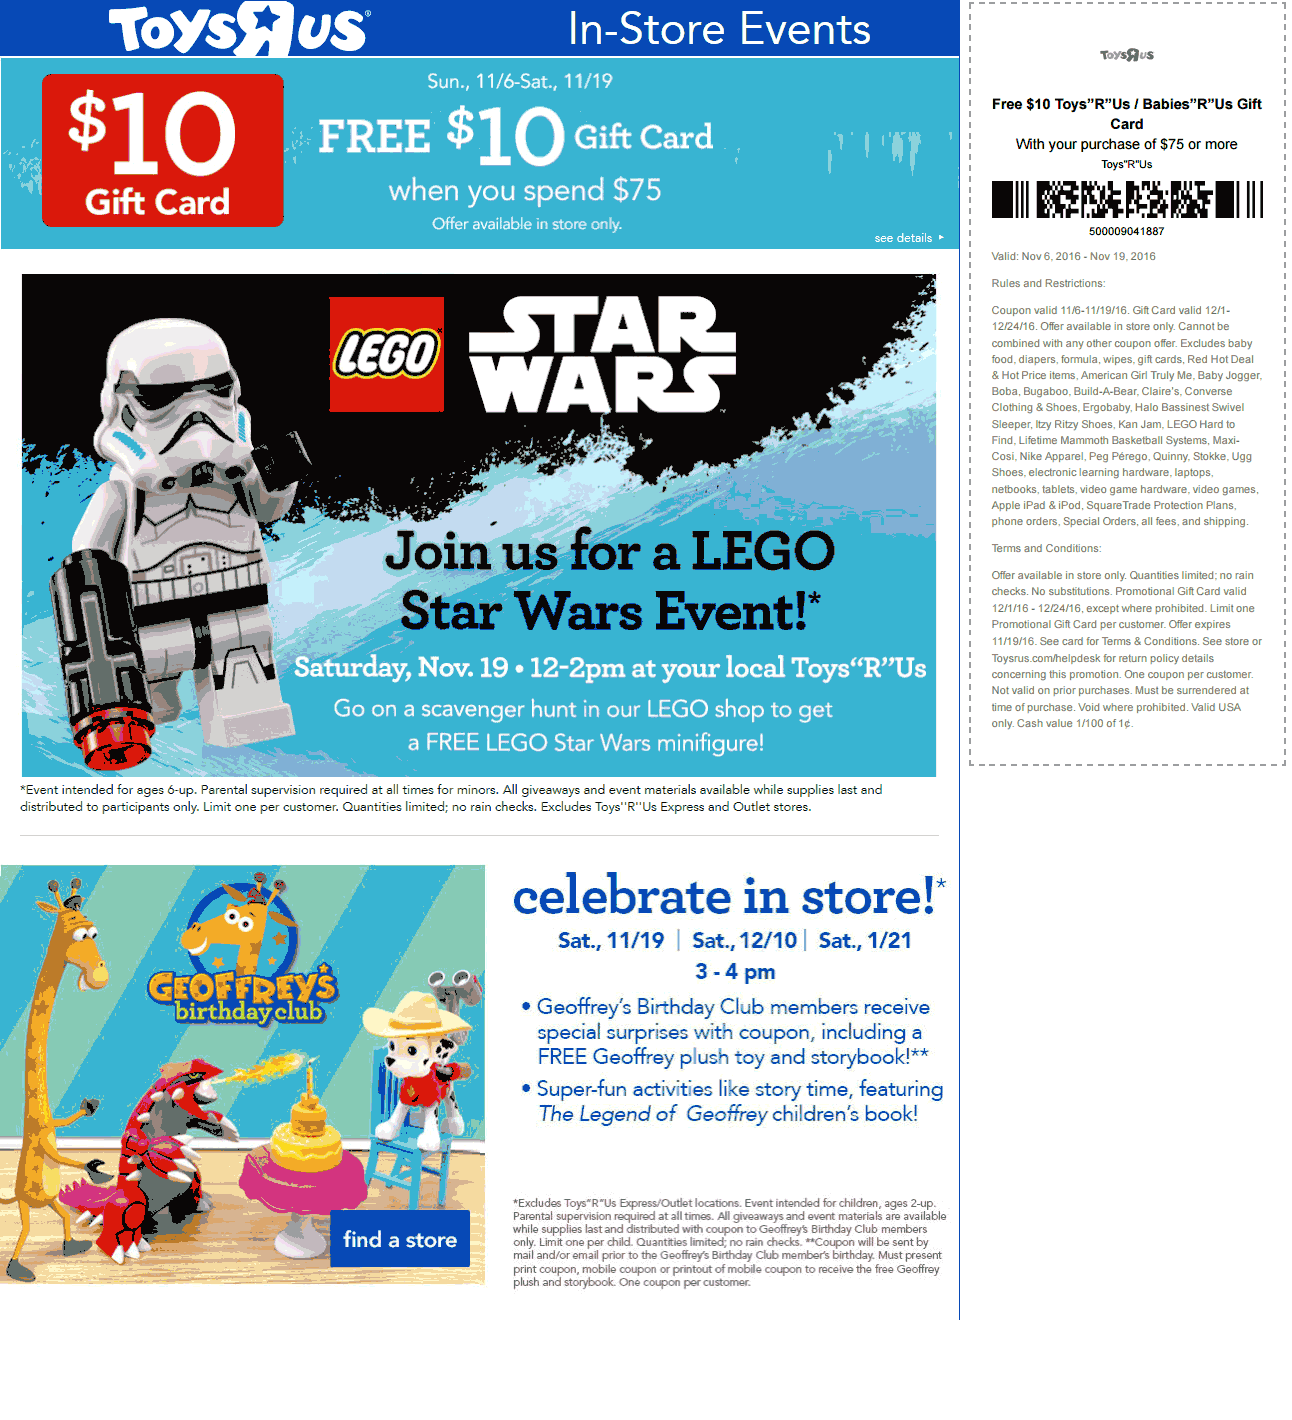 Toys R Us Coupons Shopping Deals Toys R Us Star Wars Figures Free Lego